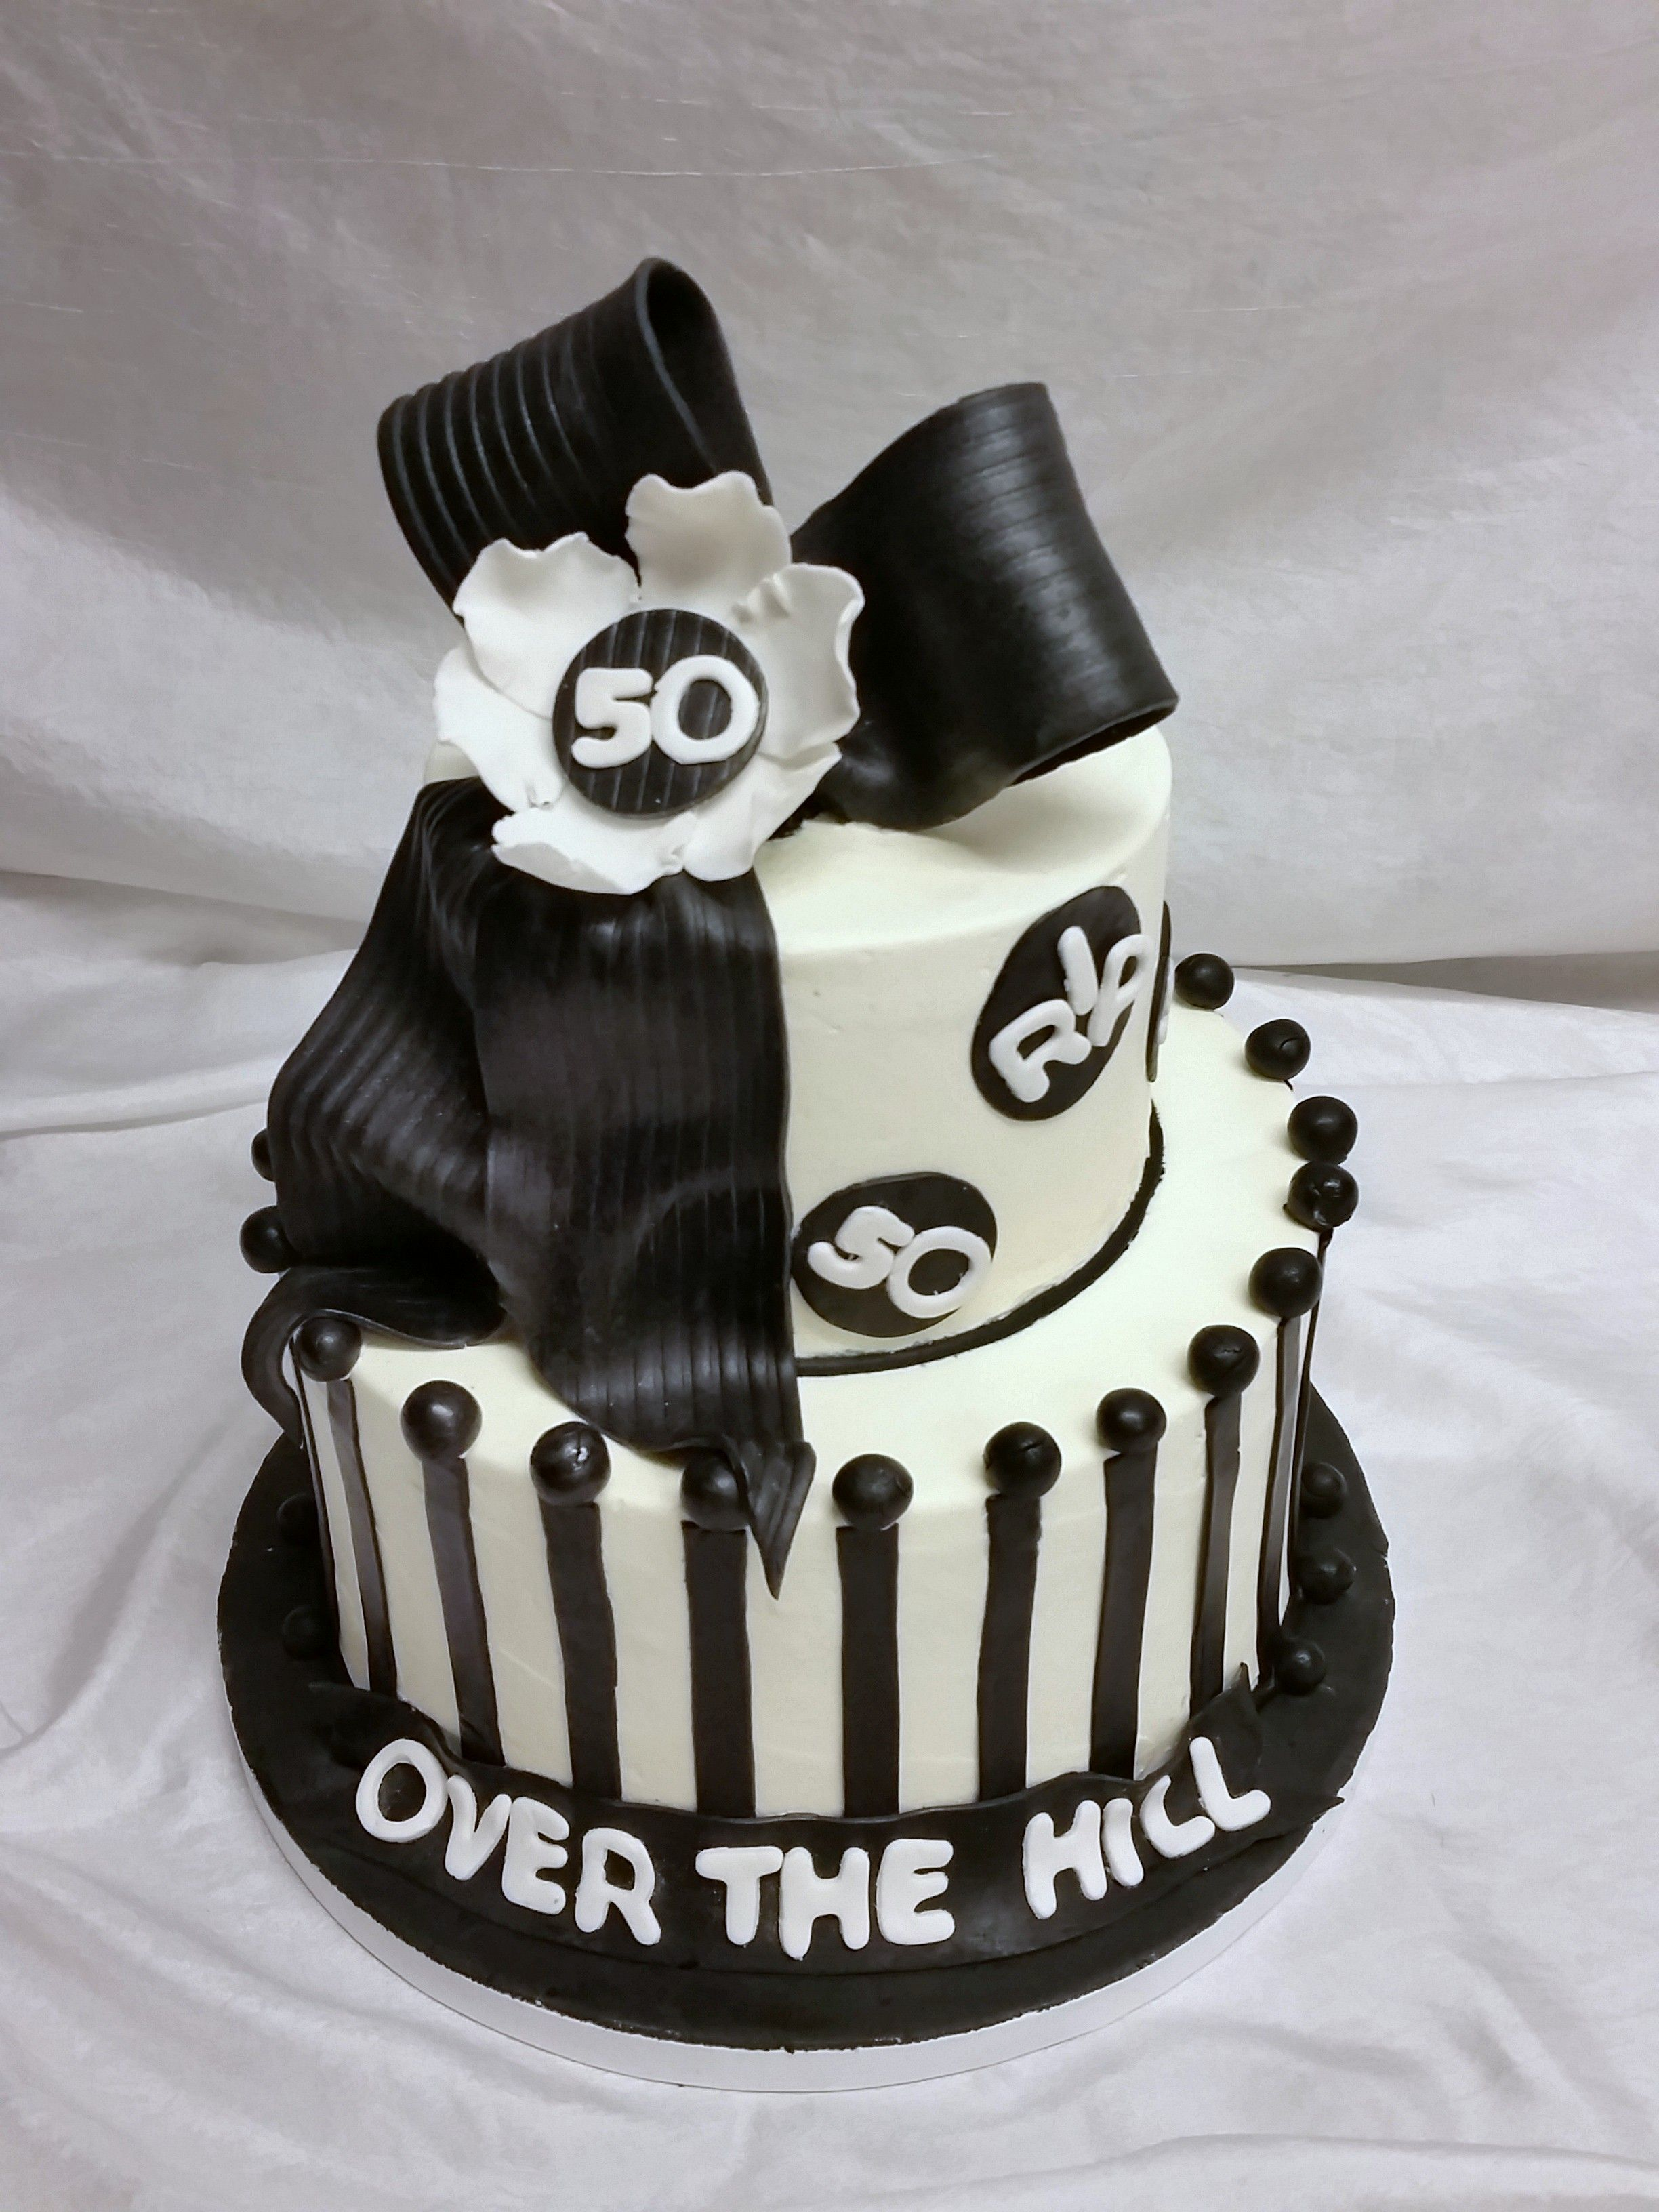 Over The Hill Birthday Cake IncrEdible Endings Specialty Cakes